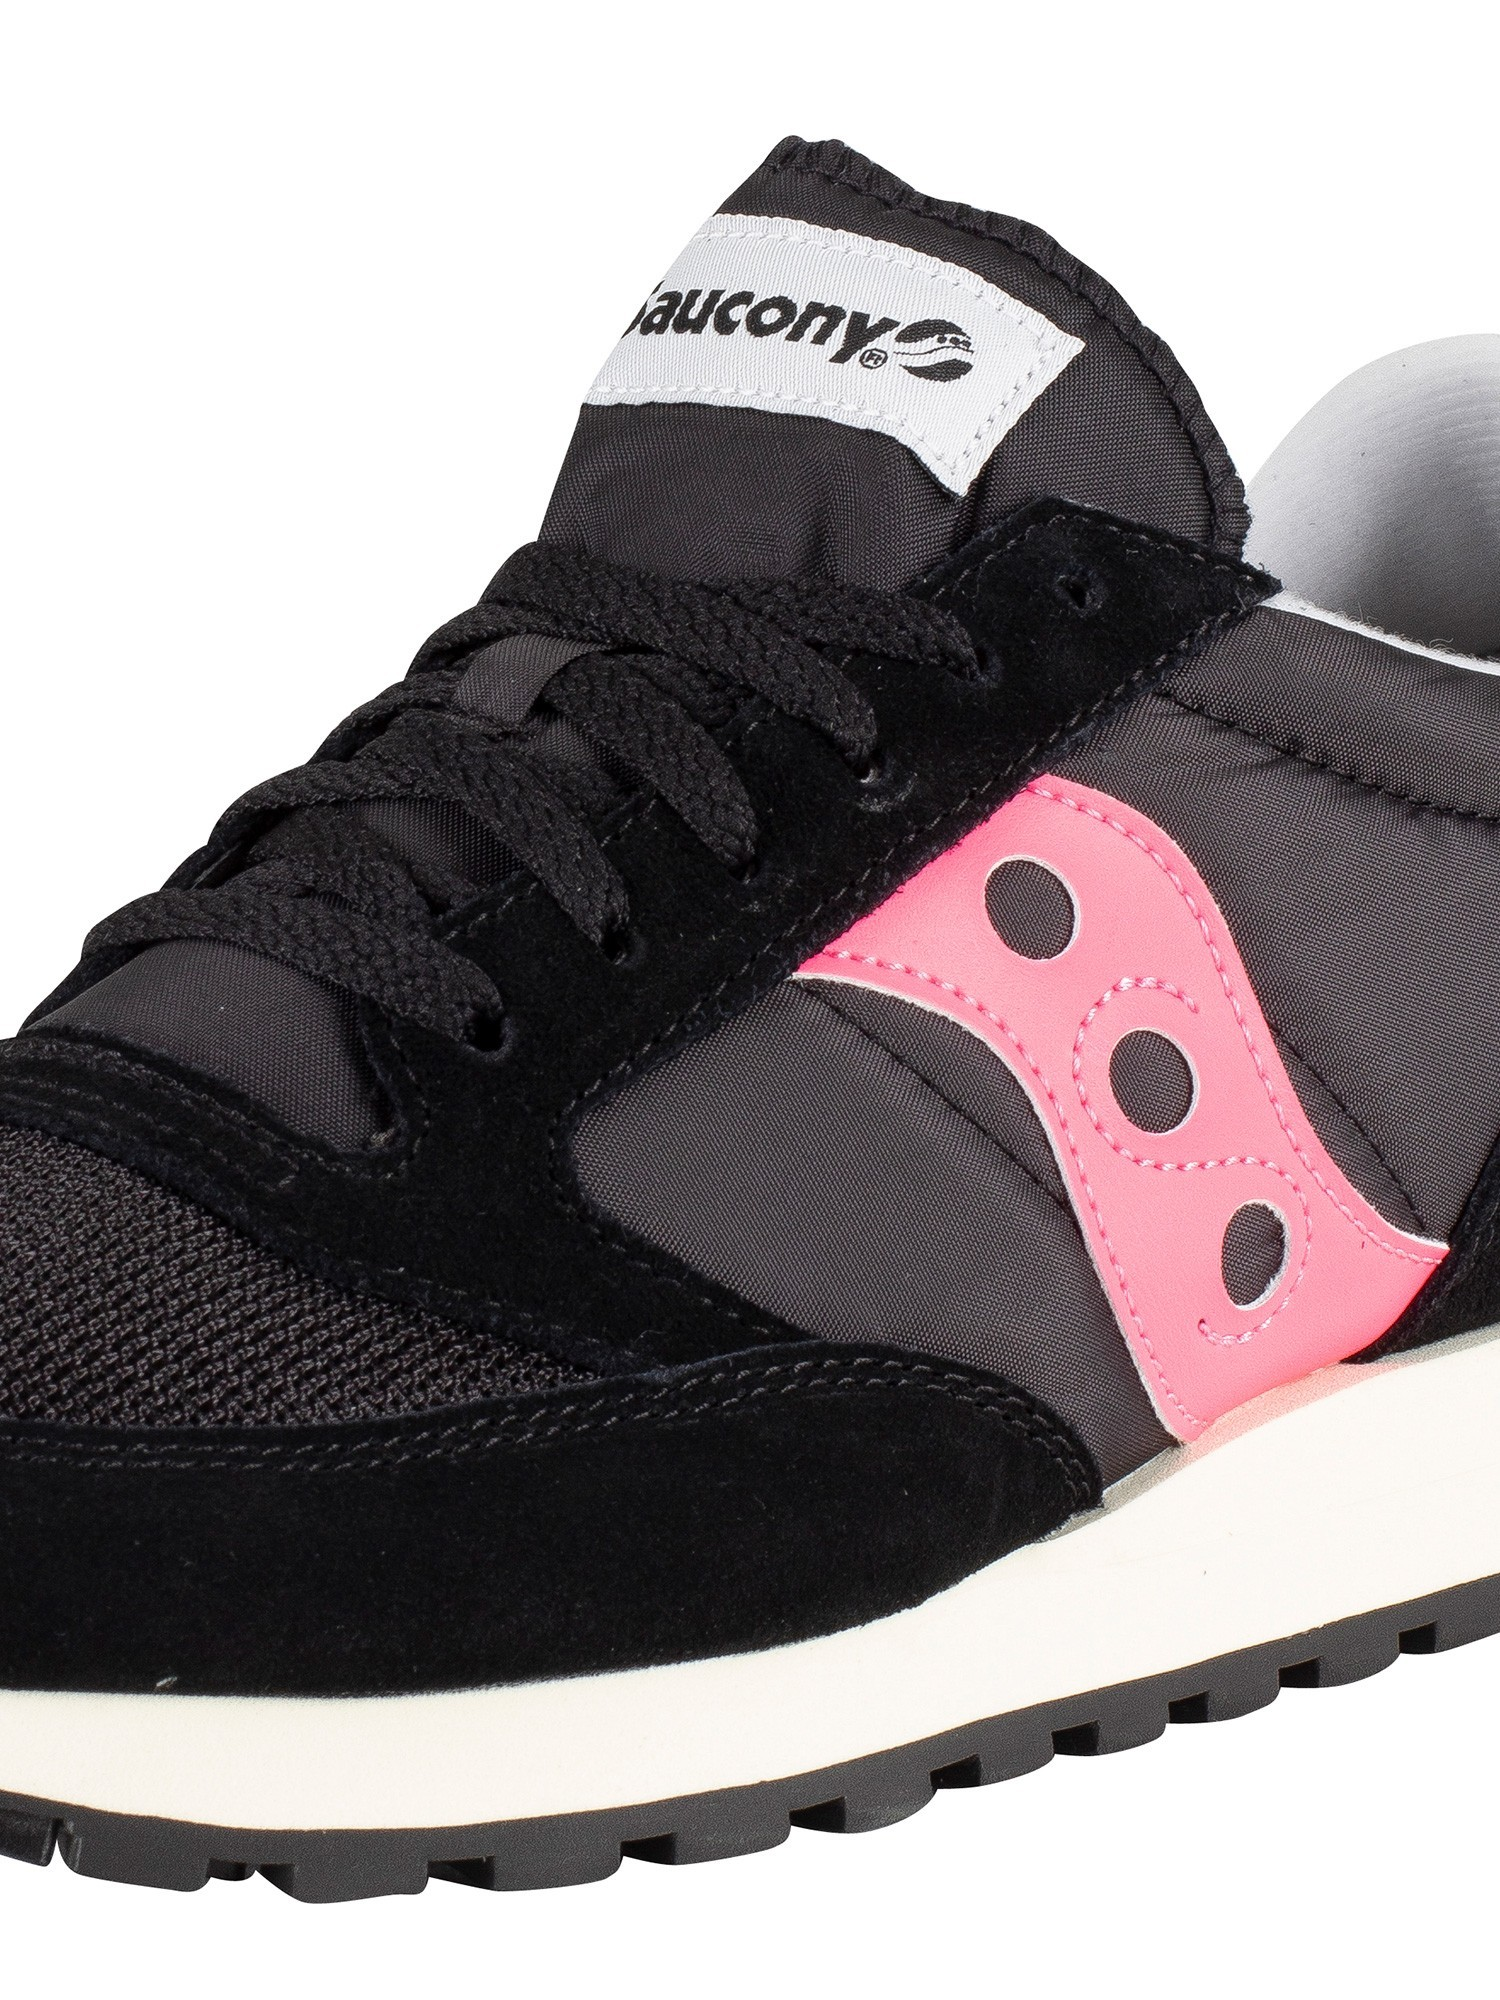 competitive price 9aa2e 569b4 Saucony Jazz Original Vintage Trainers - Black/Pink